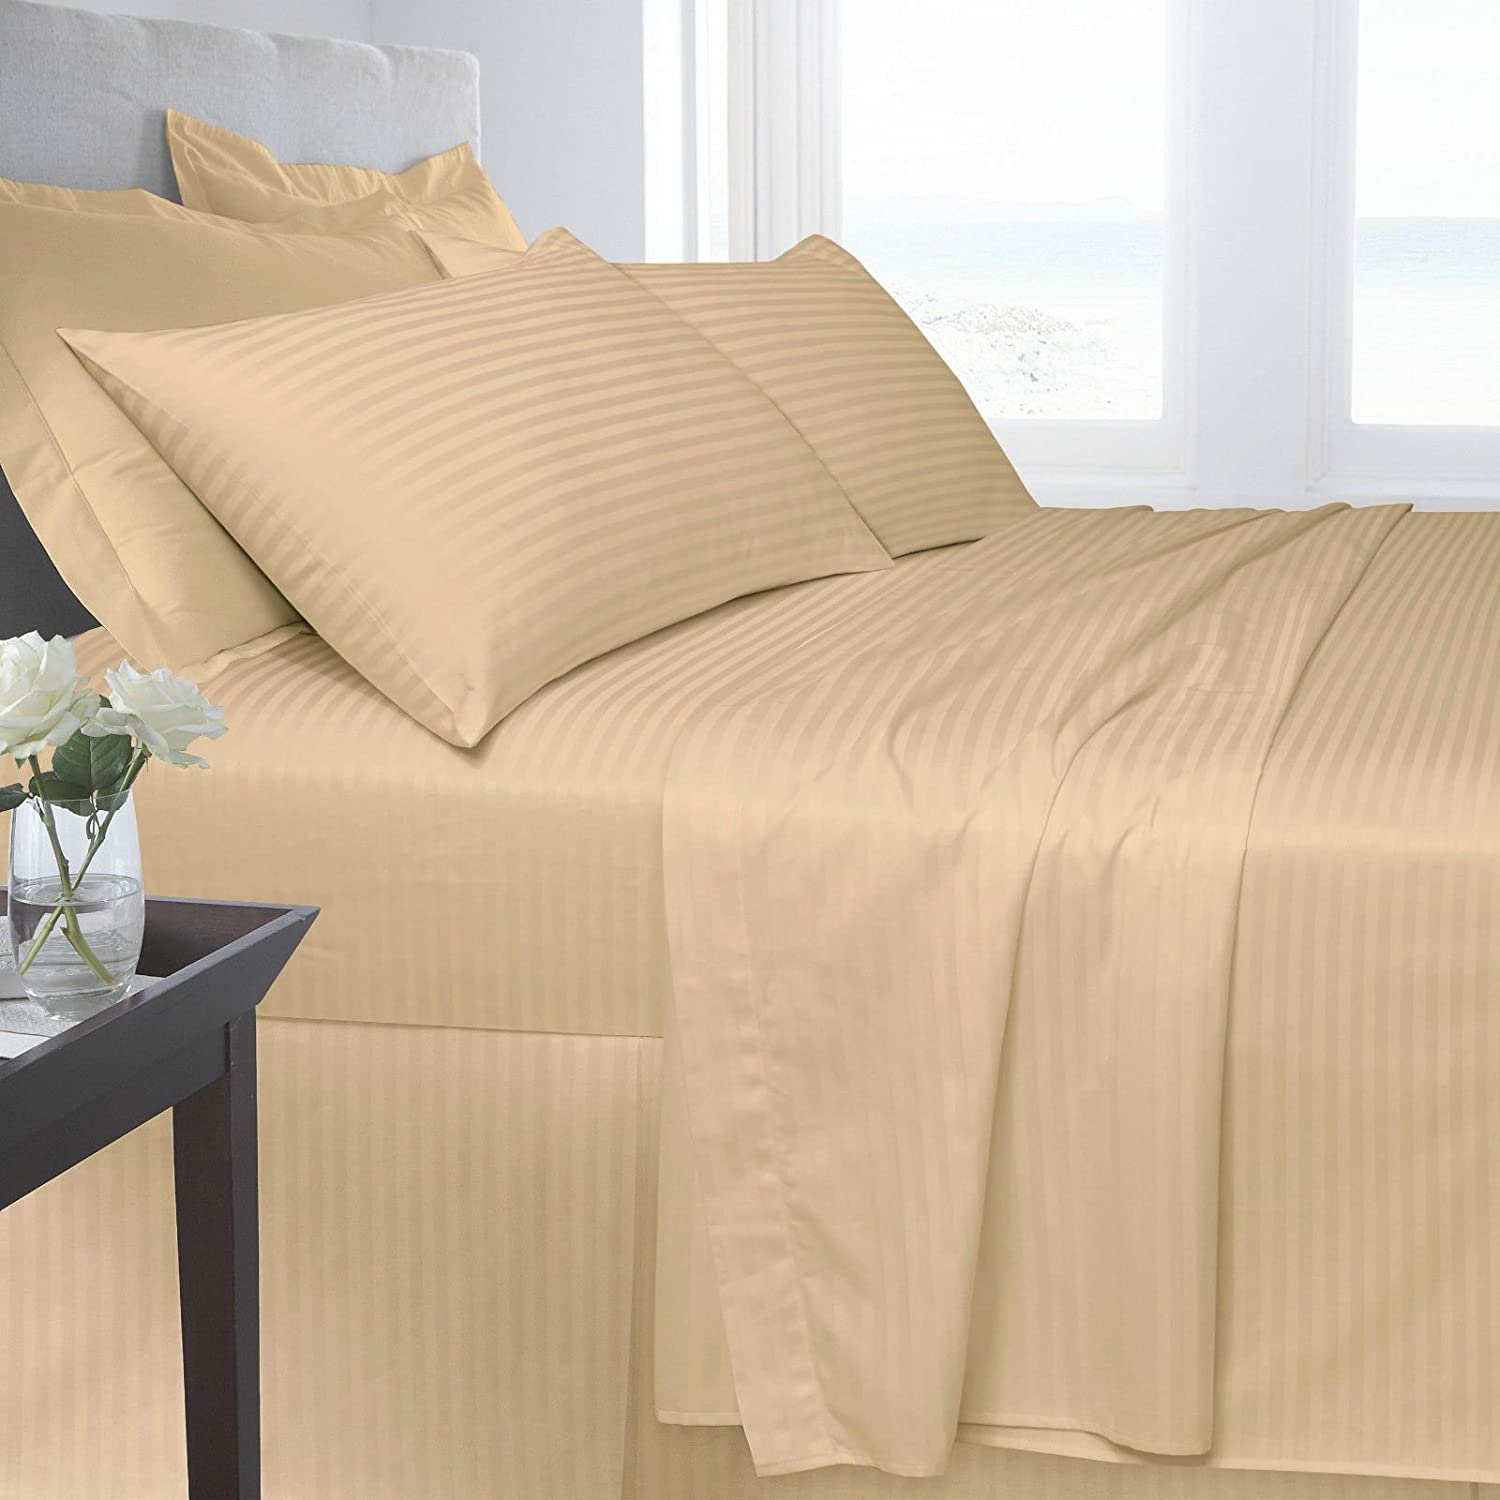 Egyptian Cotton Fitted Bed Sheet Double Size Bed New 250 Tread Count Satin Stripe High Quality Luxury Bedding Aqua